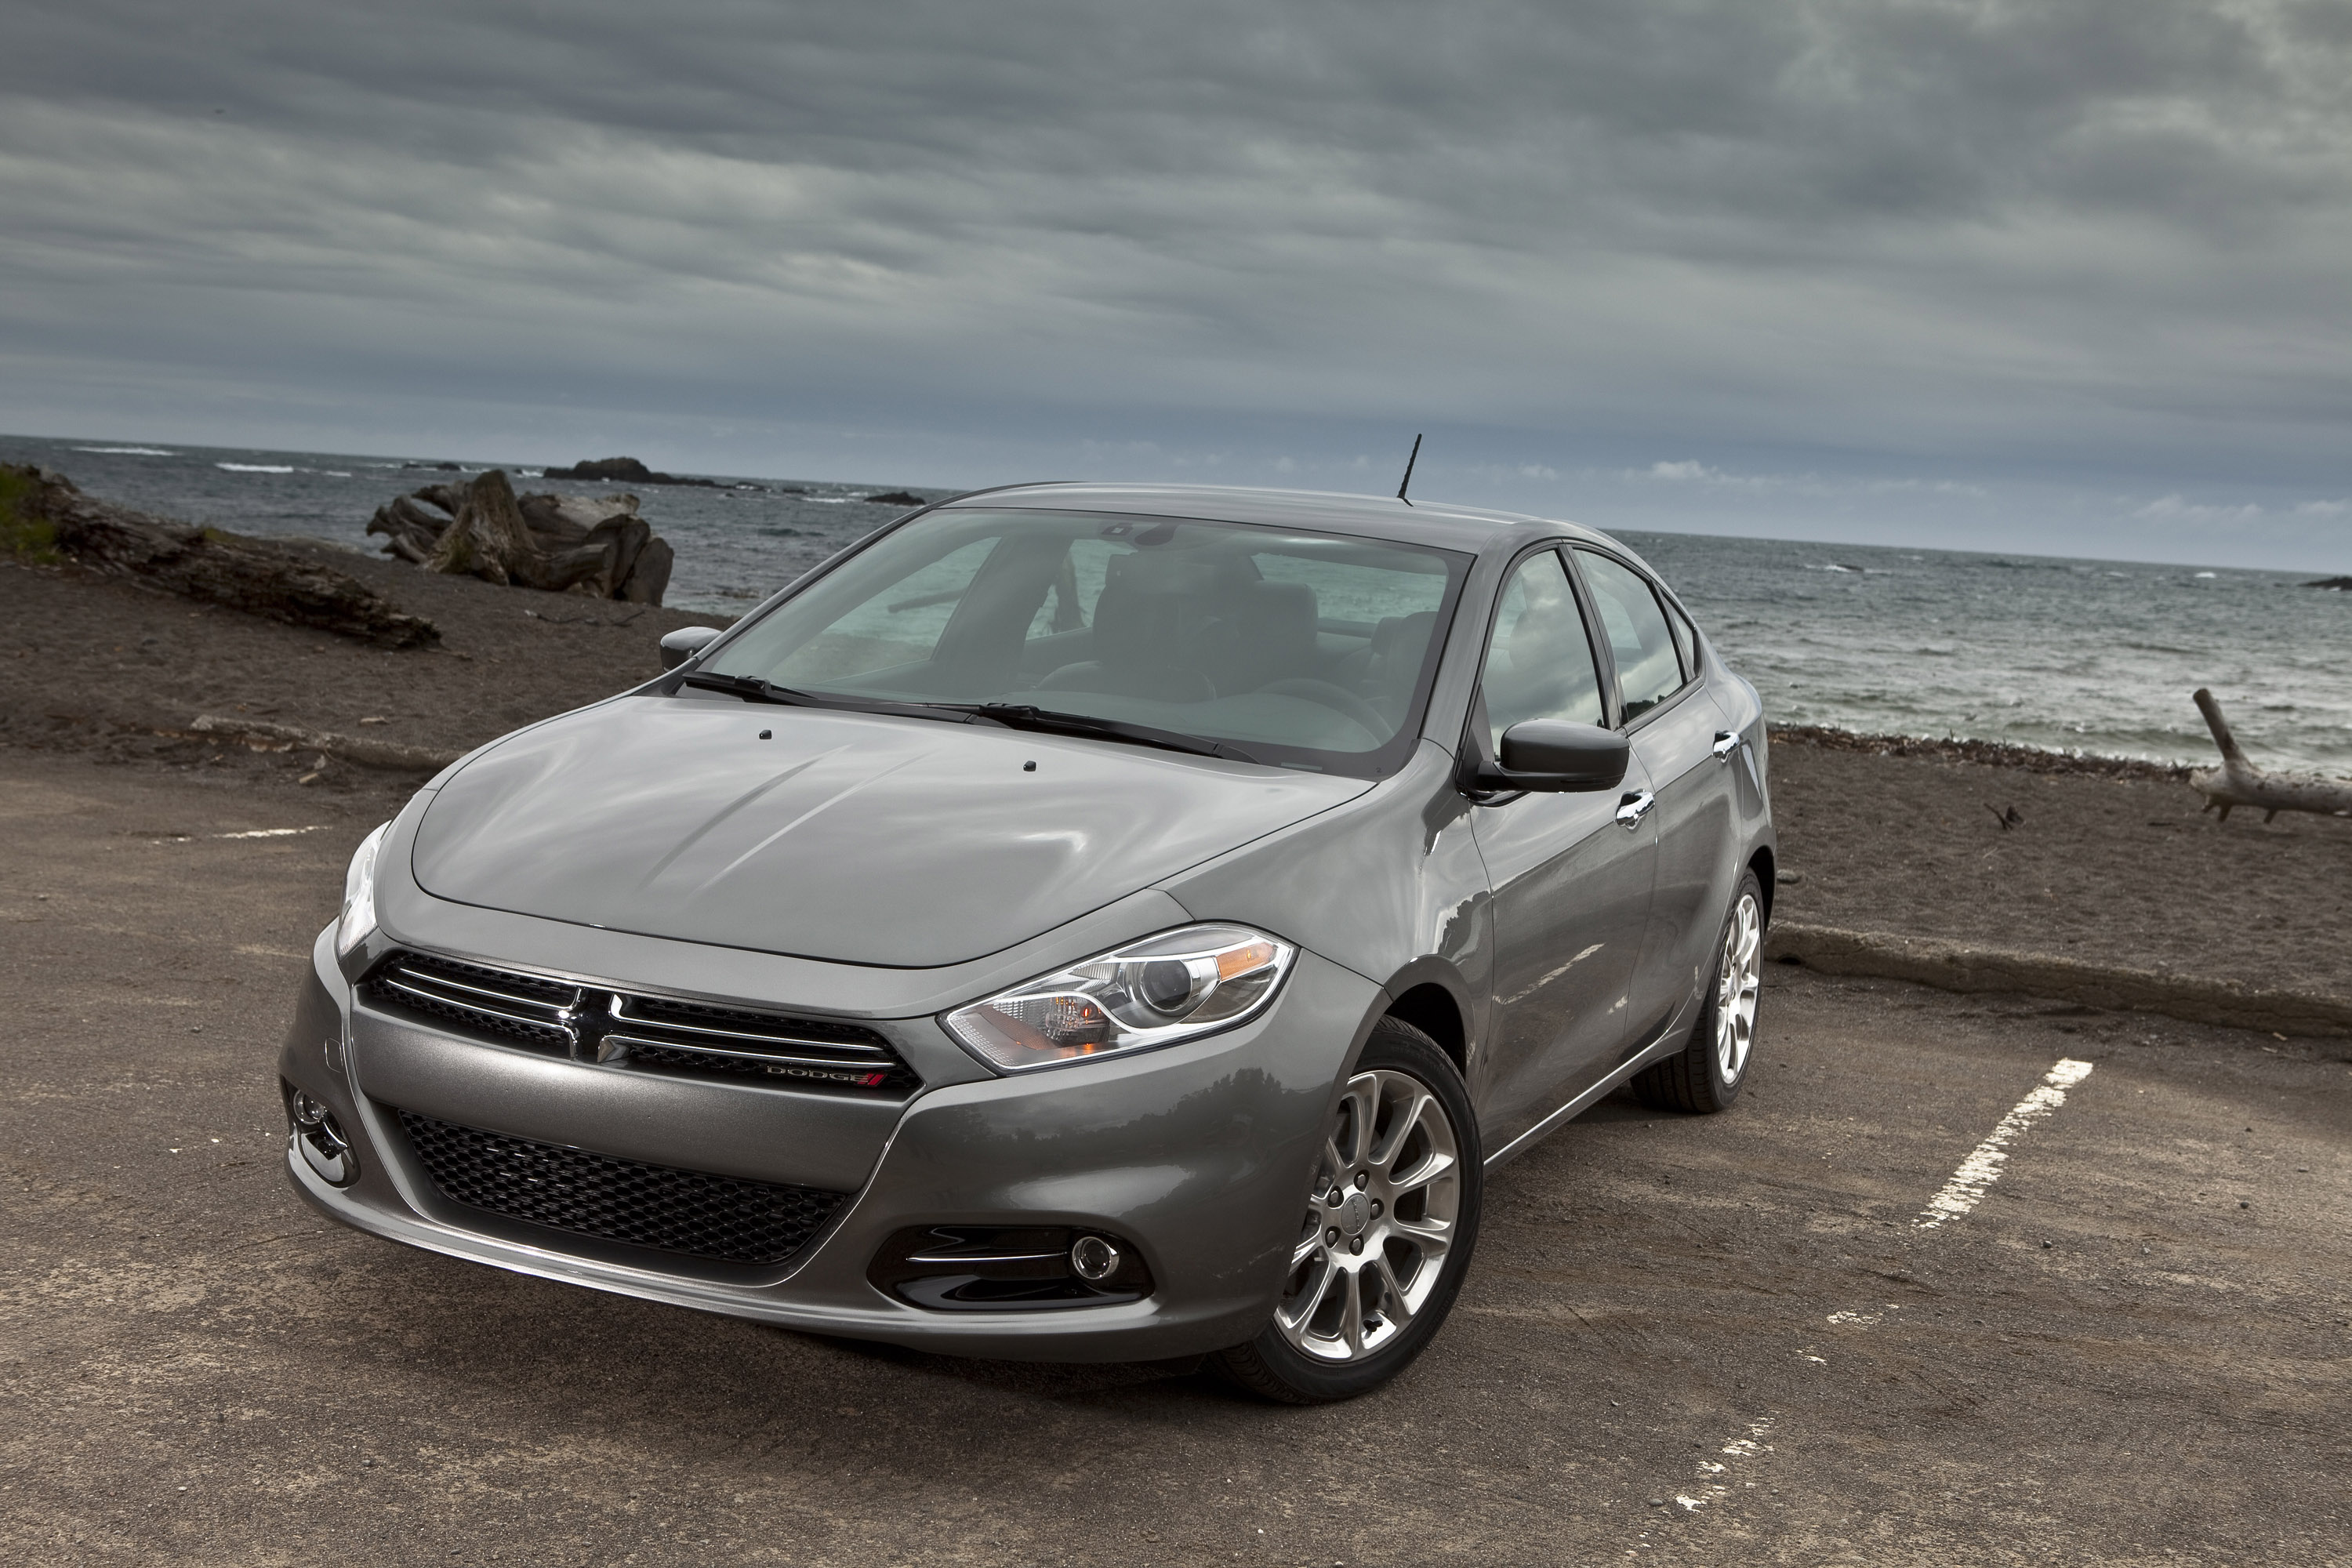 2013 dodge dart aero fuel efficient and powerful. Black Bedroom Furniture Sets. Home Design Ideas